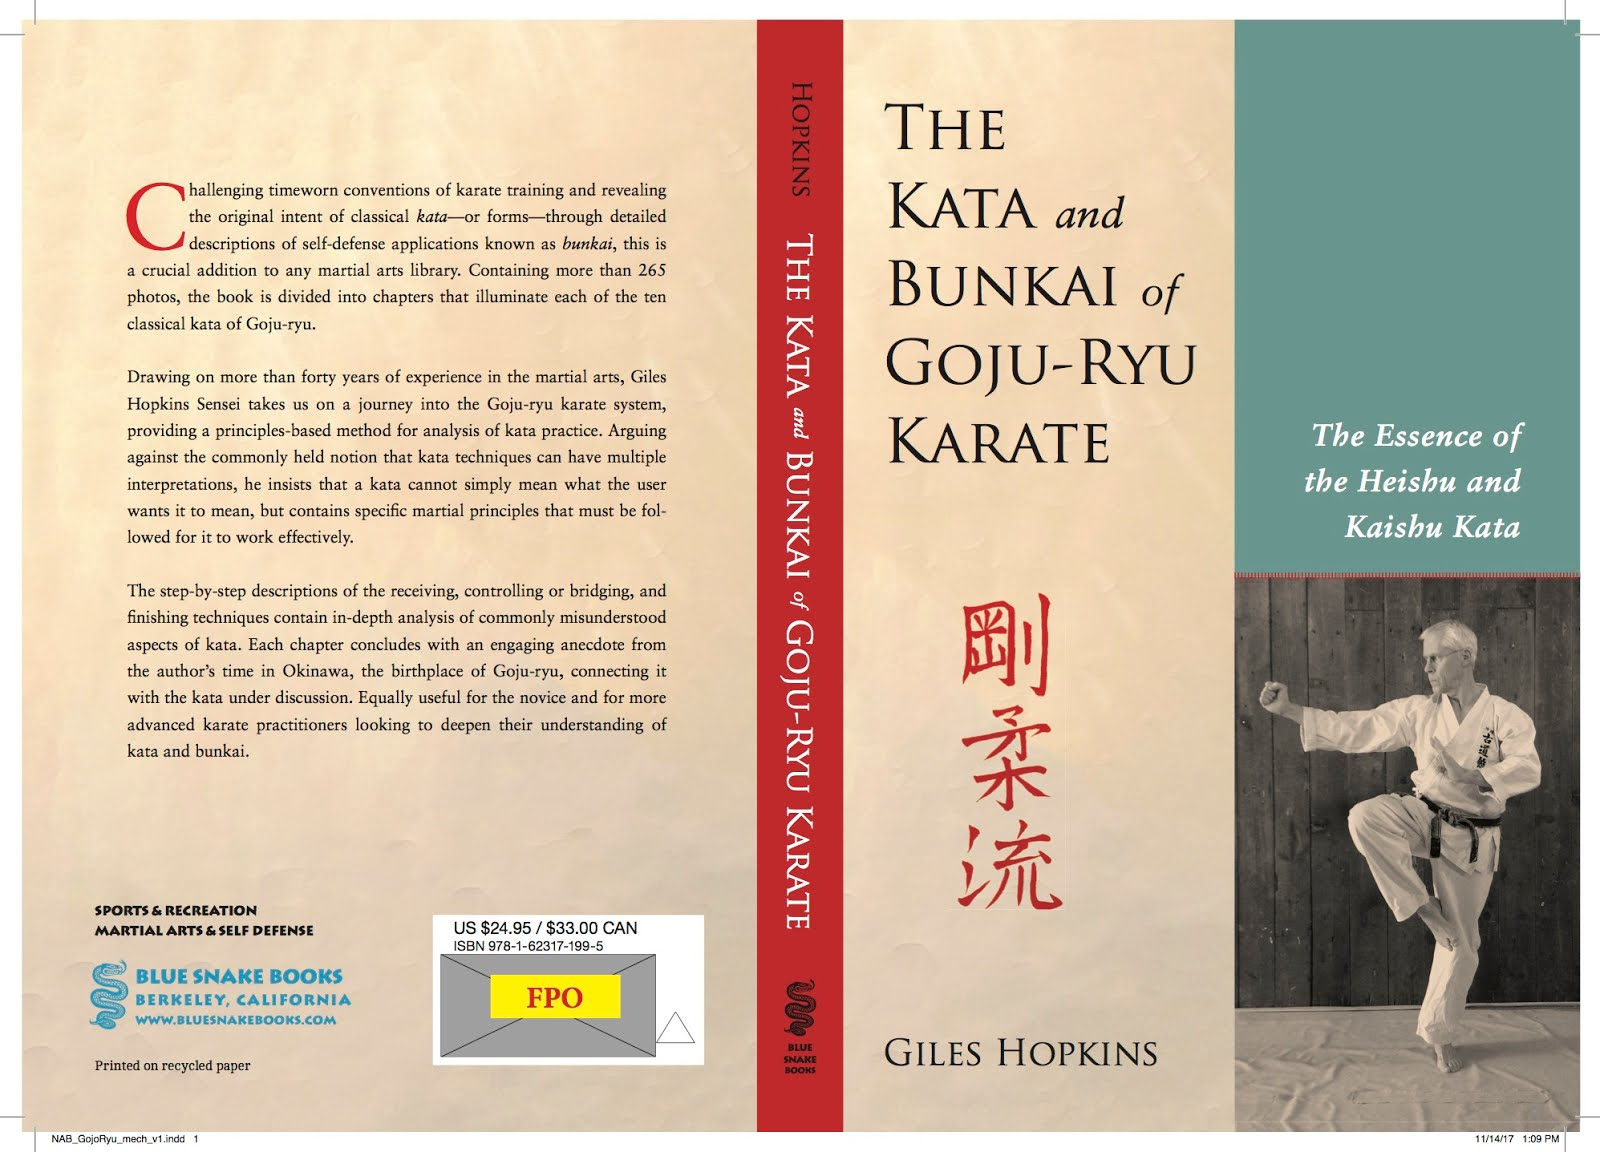 The Kata and Bunkai of Goju-Ryu Karate: the essence of the Heishu and Kaishu kata